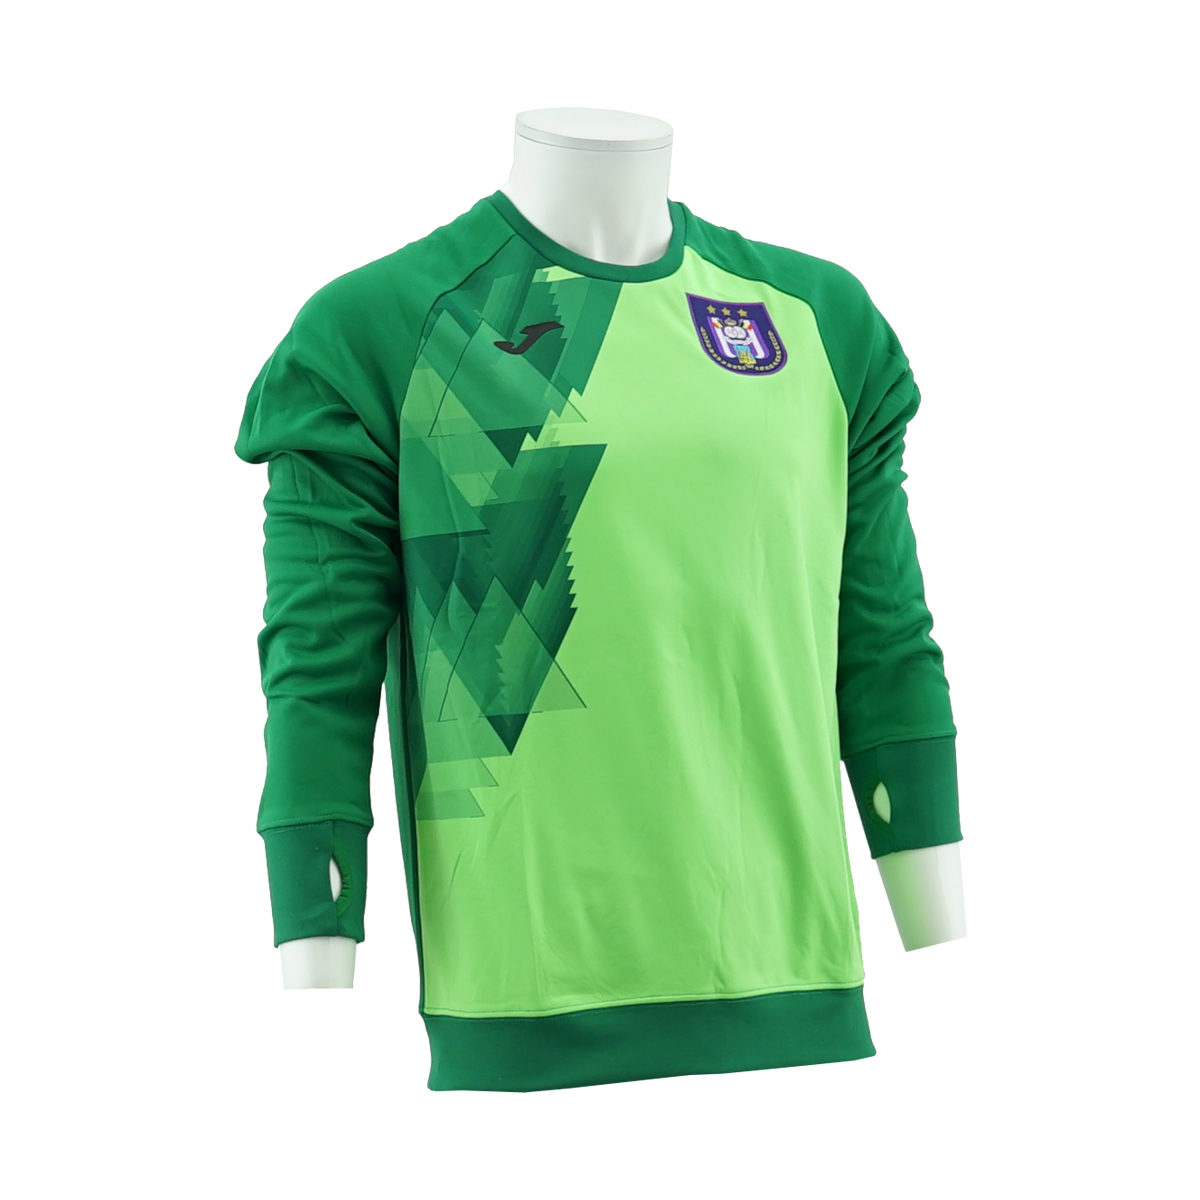 RSCA Trainingtop Kids 2020/2021 - Groen